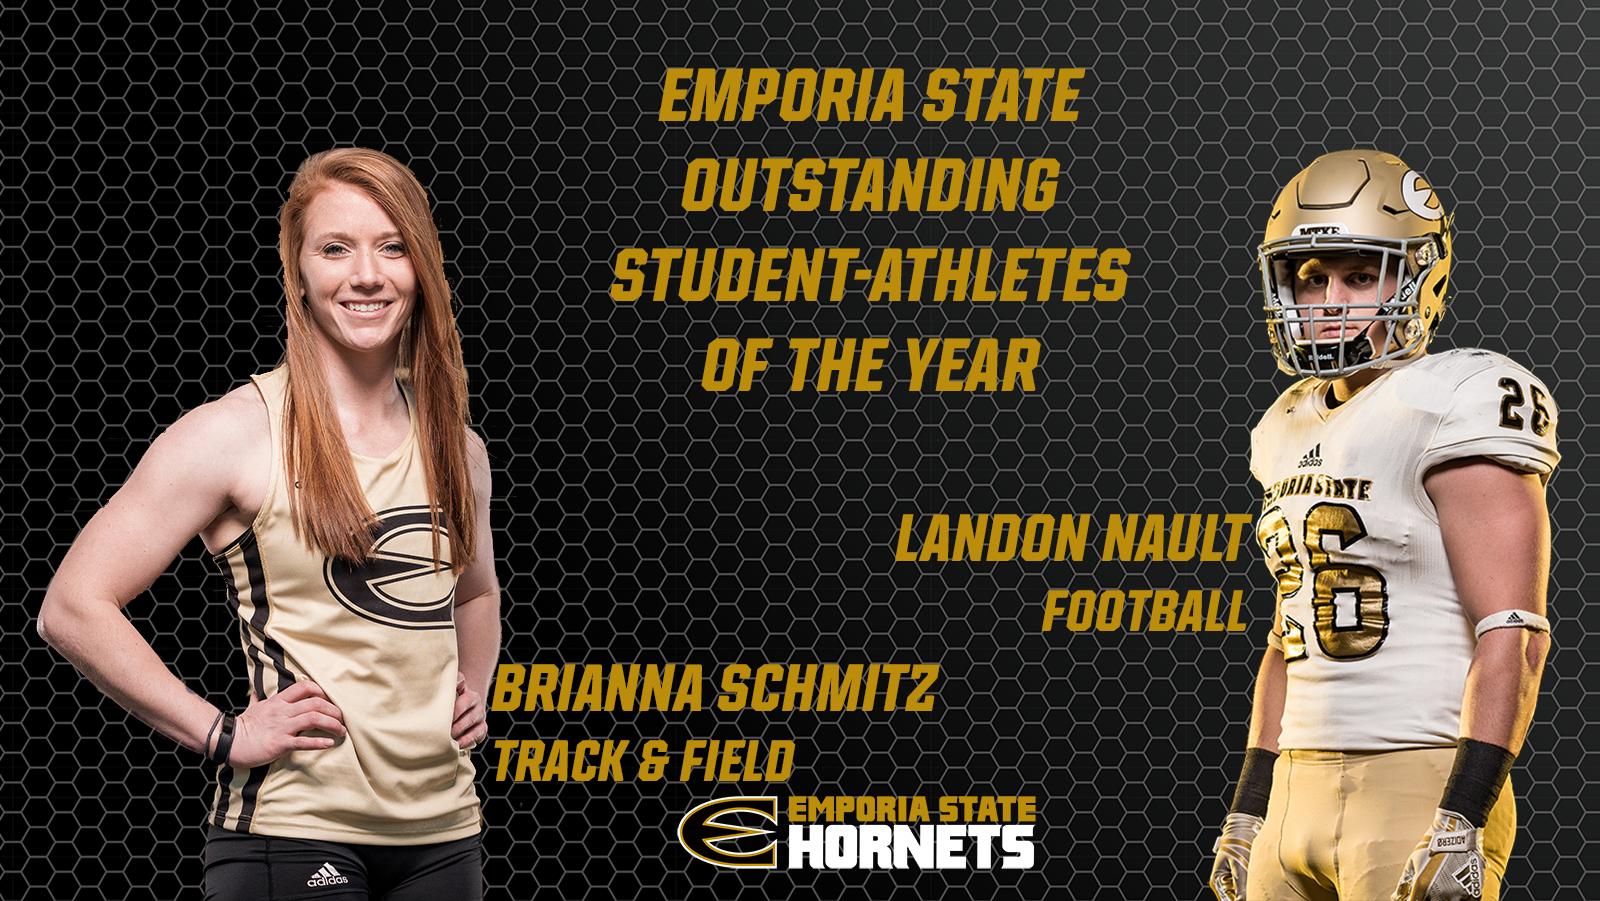 EMPORIA STATE NAMES STUDENT-ATHLETES OF THE YEAR AT